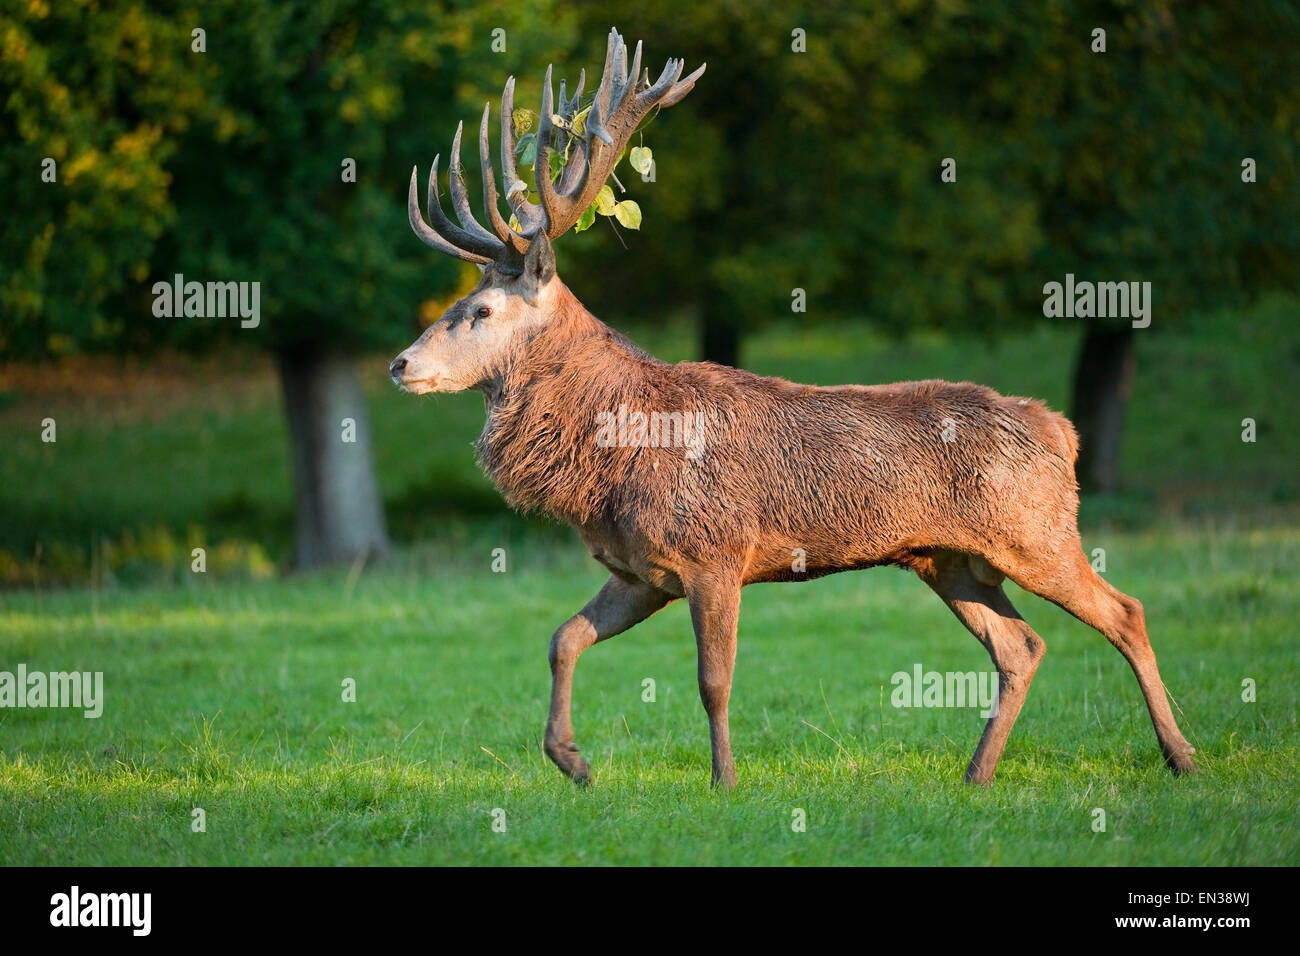 Red Deer (Cervus elaphus) stag walking across a meadow, captive, Bavaria, Germany Stock Photo